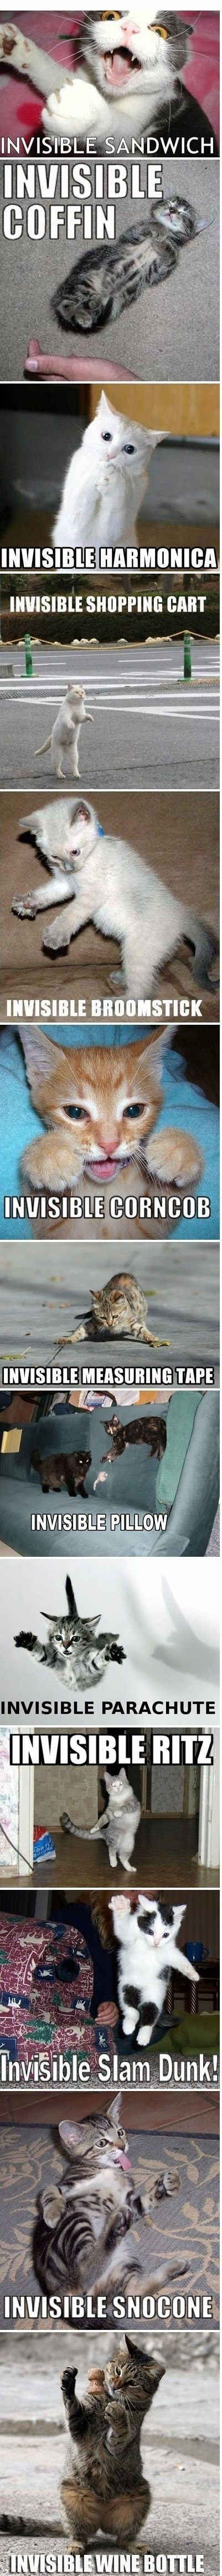 Invisible cat II